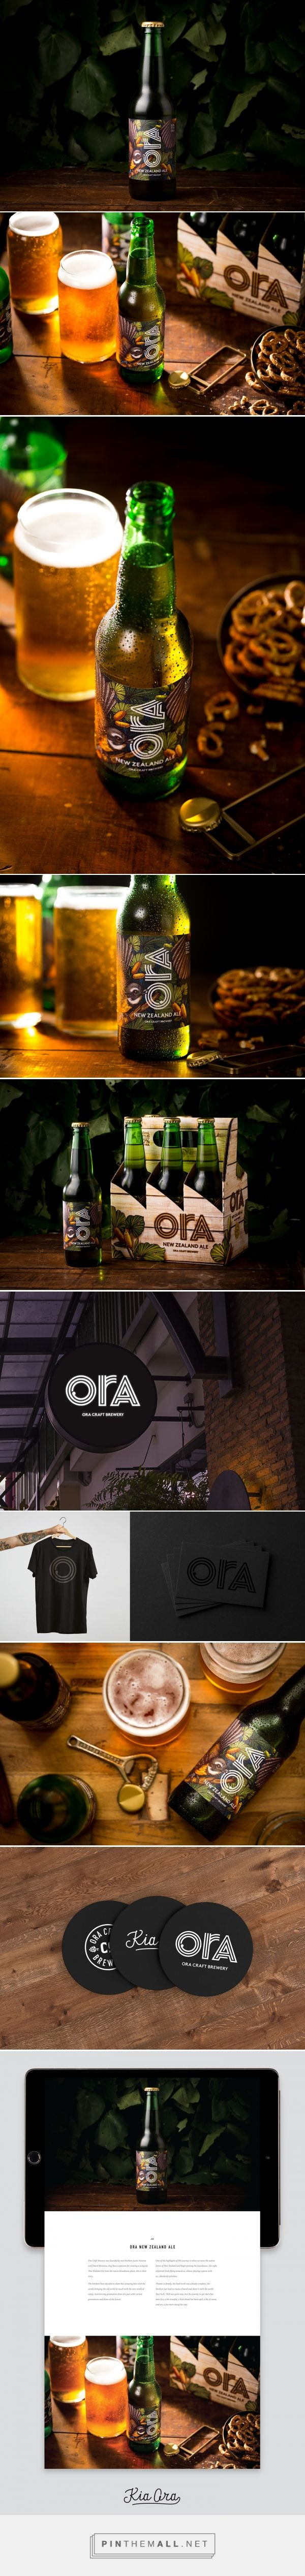 Ora Craft Beer Branding and Packaging by Kate O'Hara & Monique Robins | Fivestar Branding Agency – Design and Branding Agency & Curated Inspiration Gallery  #packaging #beerpackaging #design #designinspiration